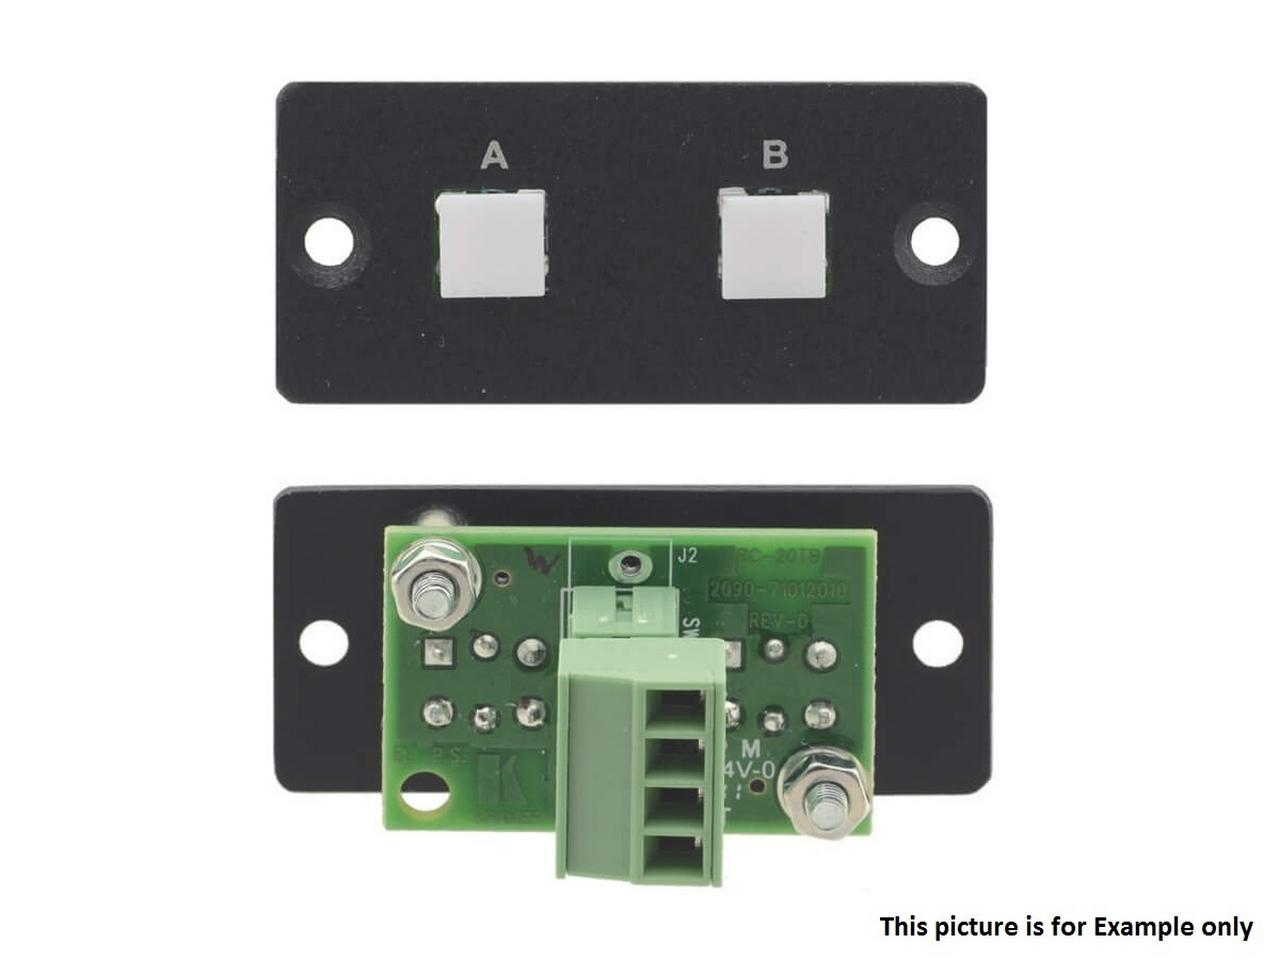 RC-20TB(B) Wall Plate Insert - 2-Button Contact Closure Switch - Black by Kramer